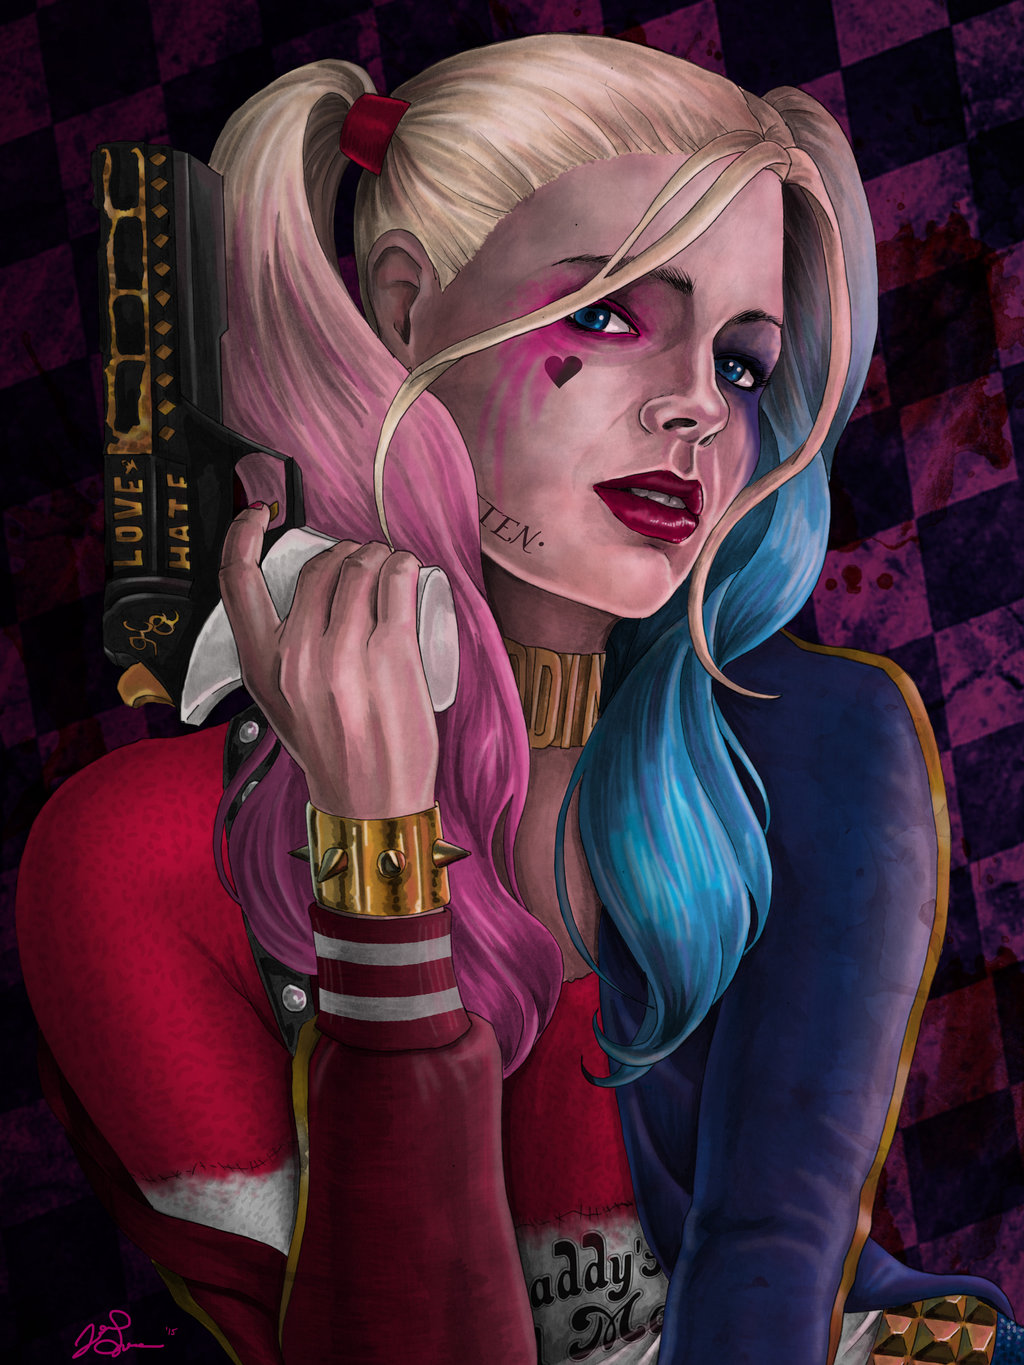 margot_robbie_as_harley_quinn_by_jgiampietro-d9lkn1w